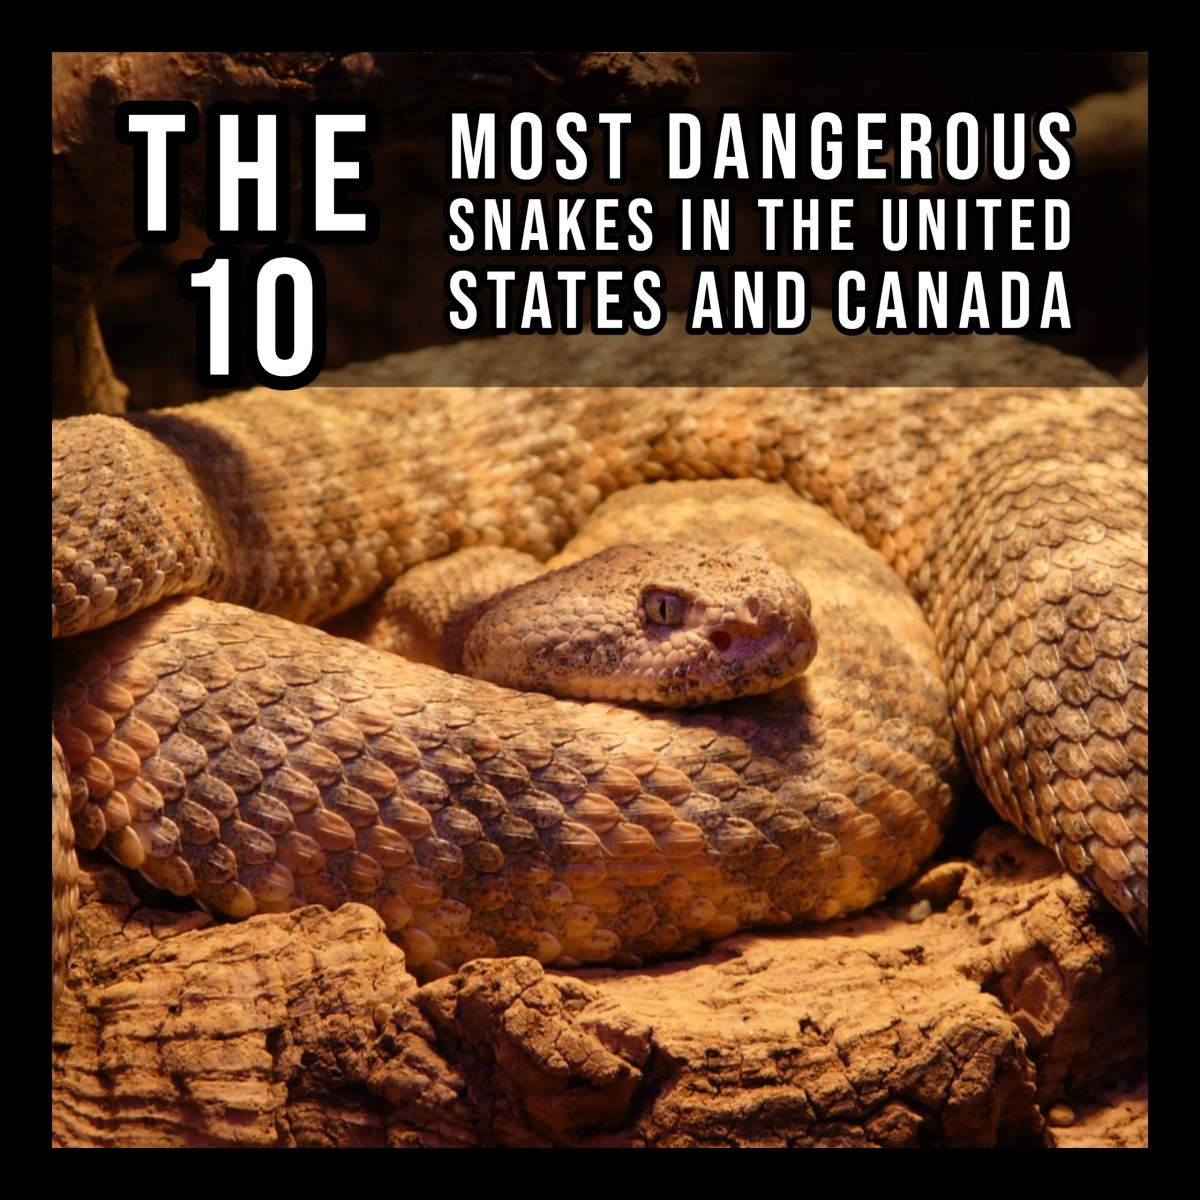 The 10 Most Dangerous Snakes in the United States and Canada